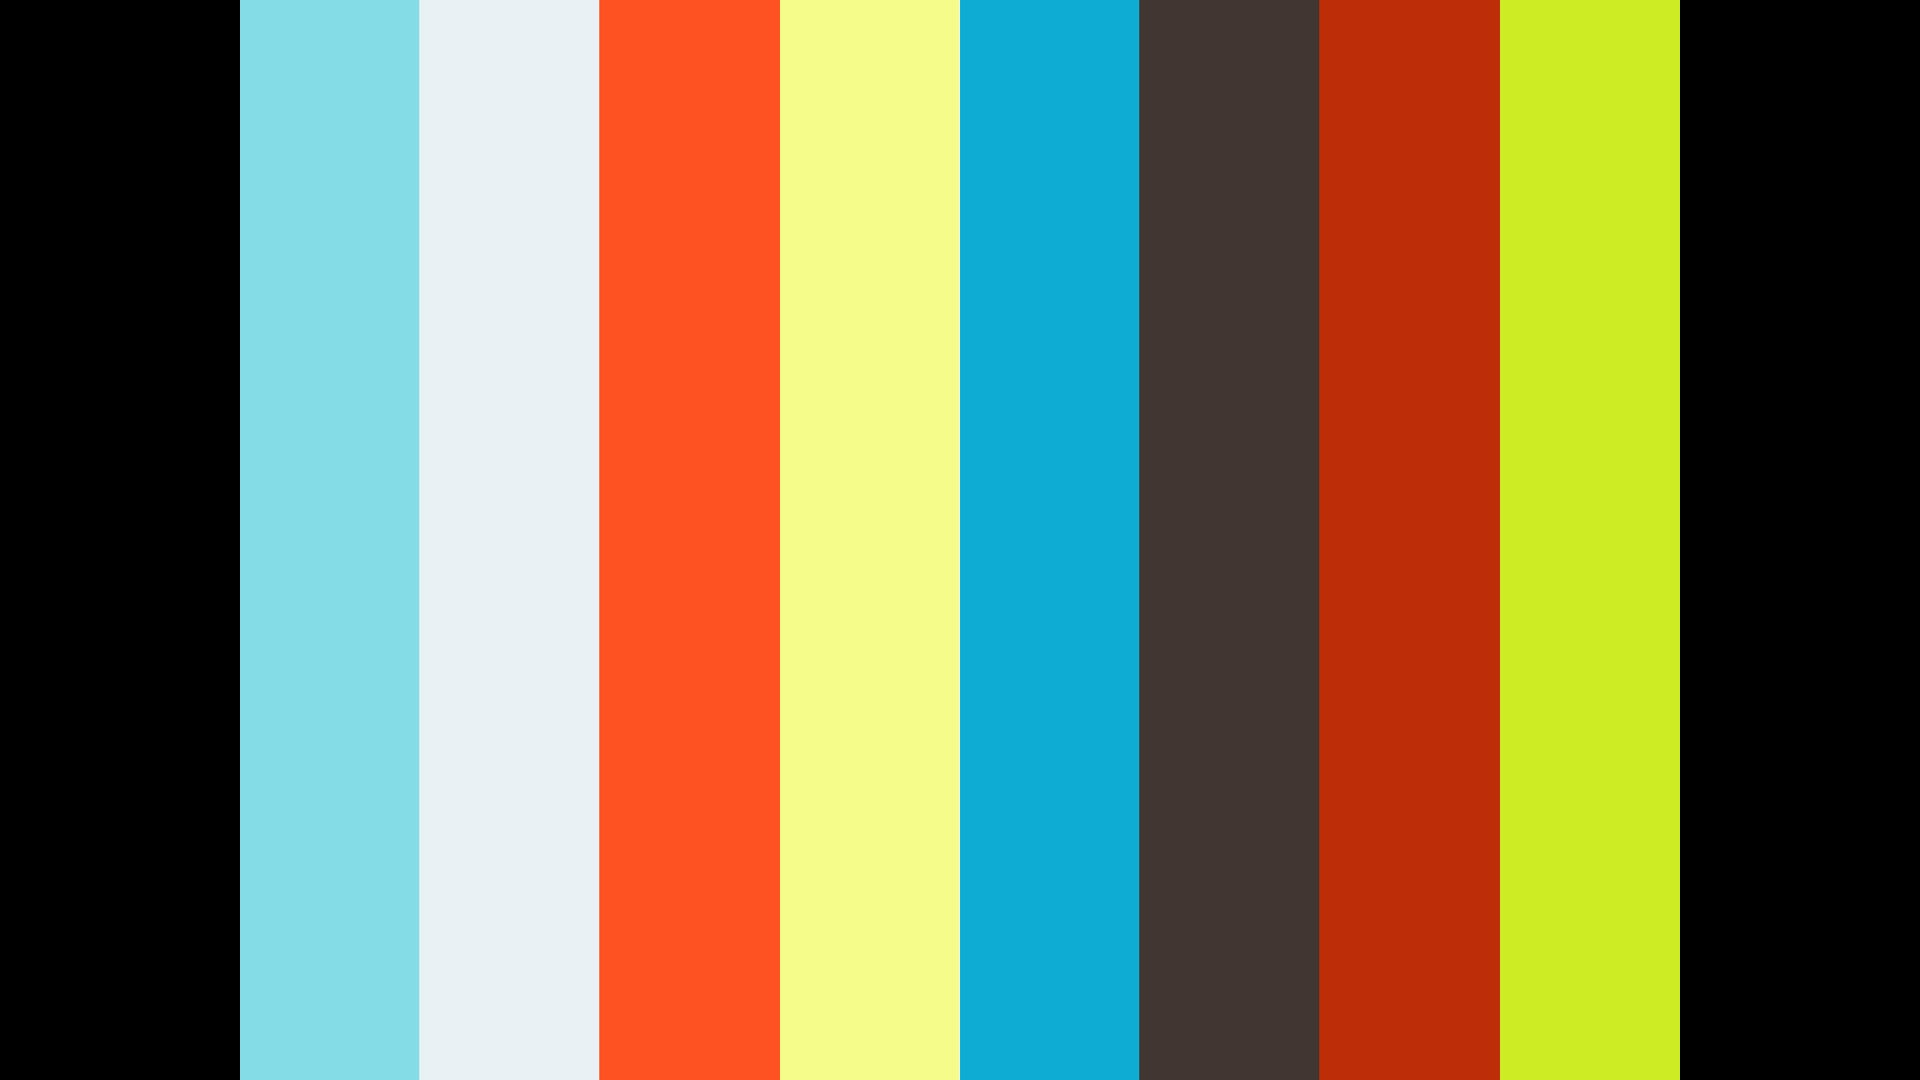 Office of The District Attorney County of Riverside - Crime Prevention Unit